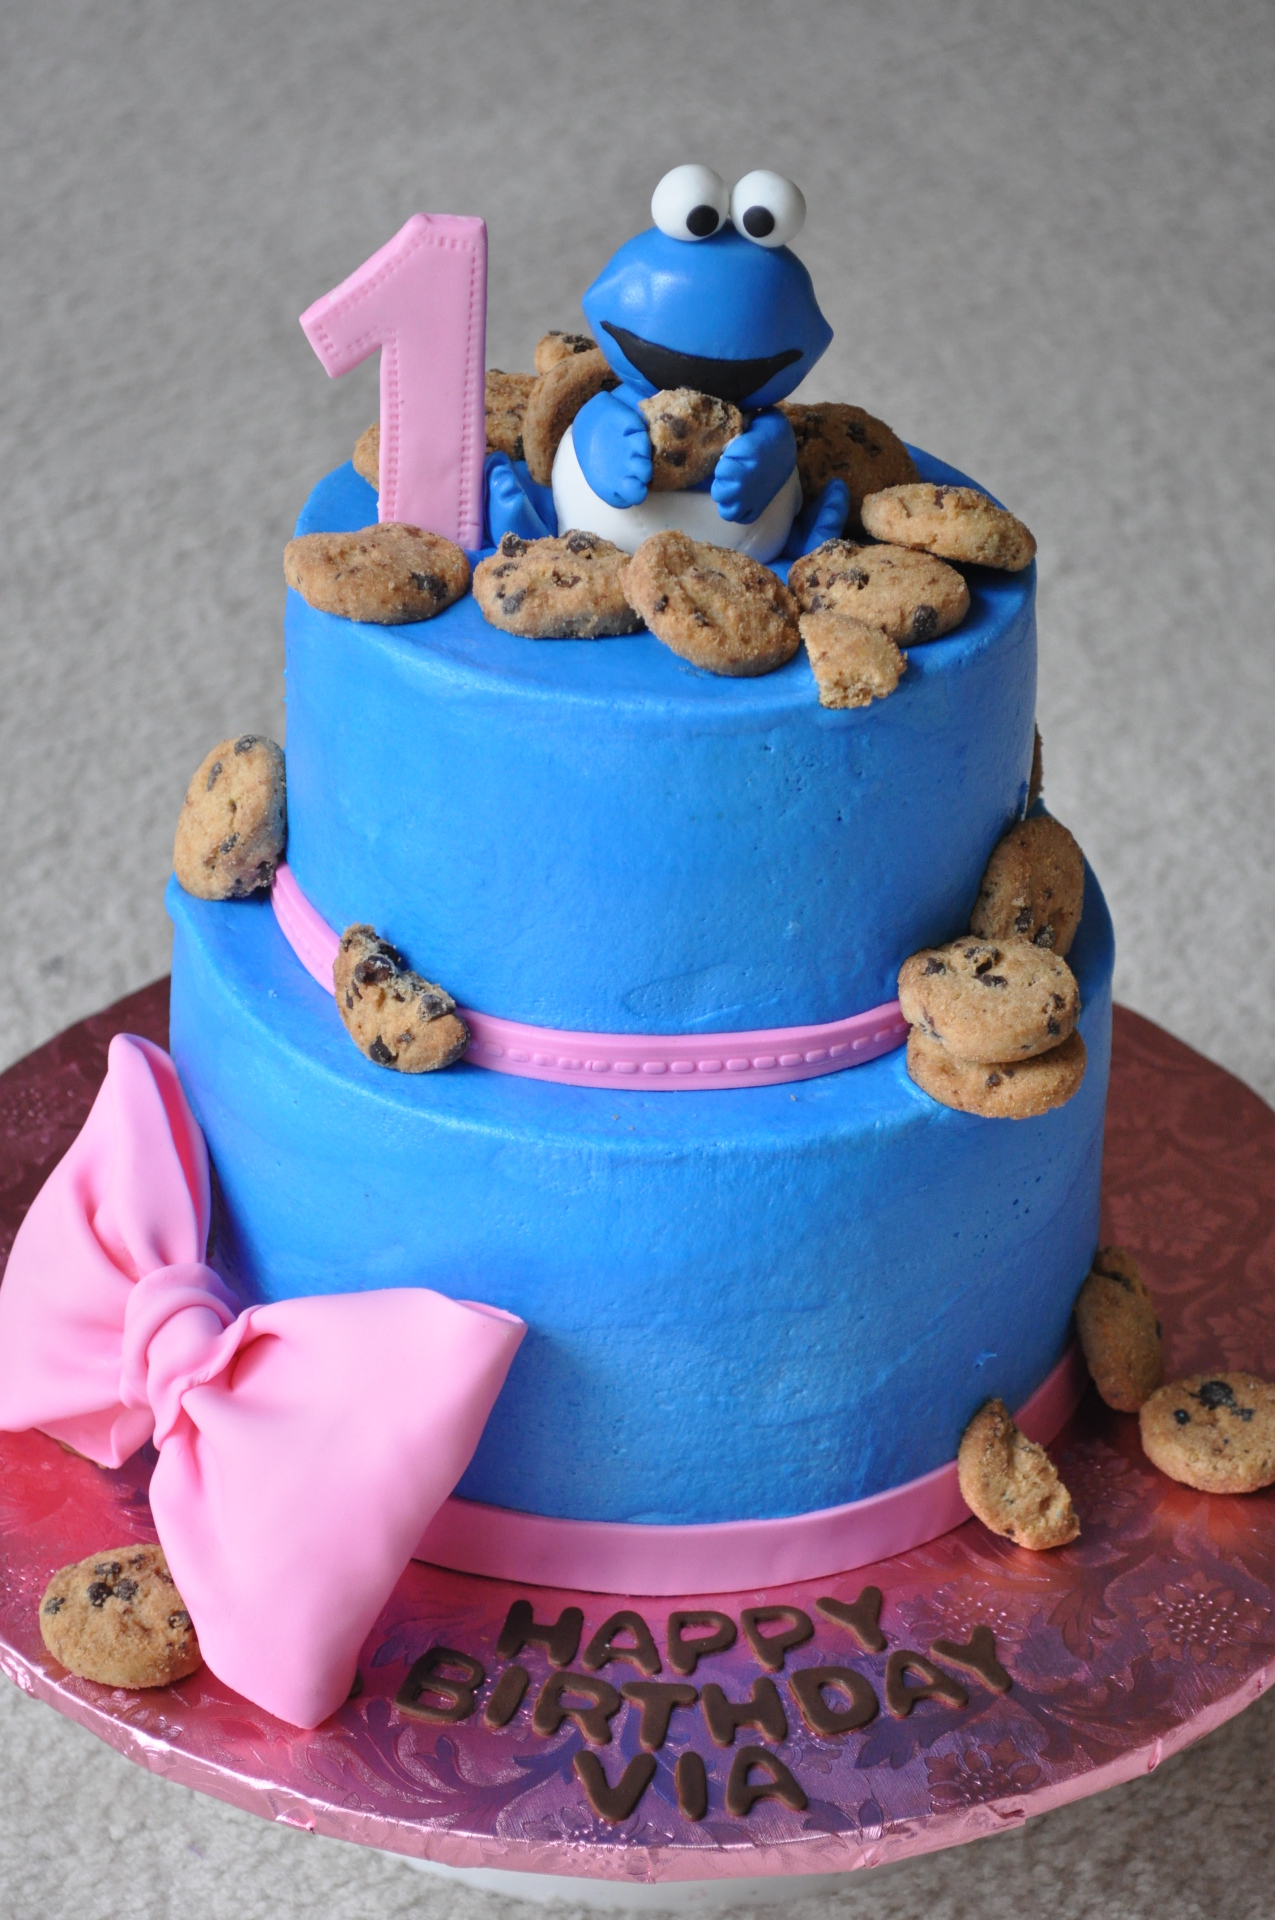 Cookie monster cake, Sesame street cake, 1st birthday cake